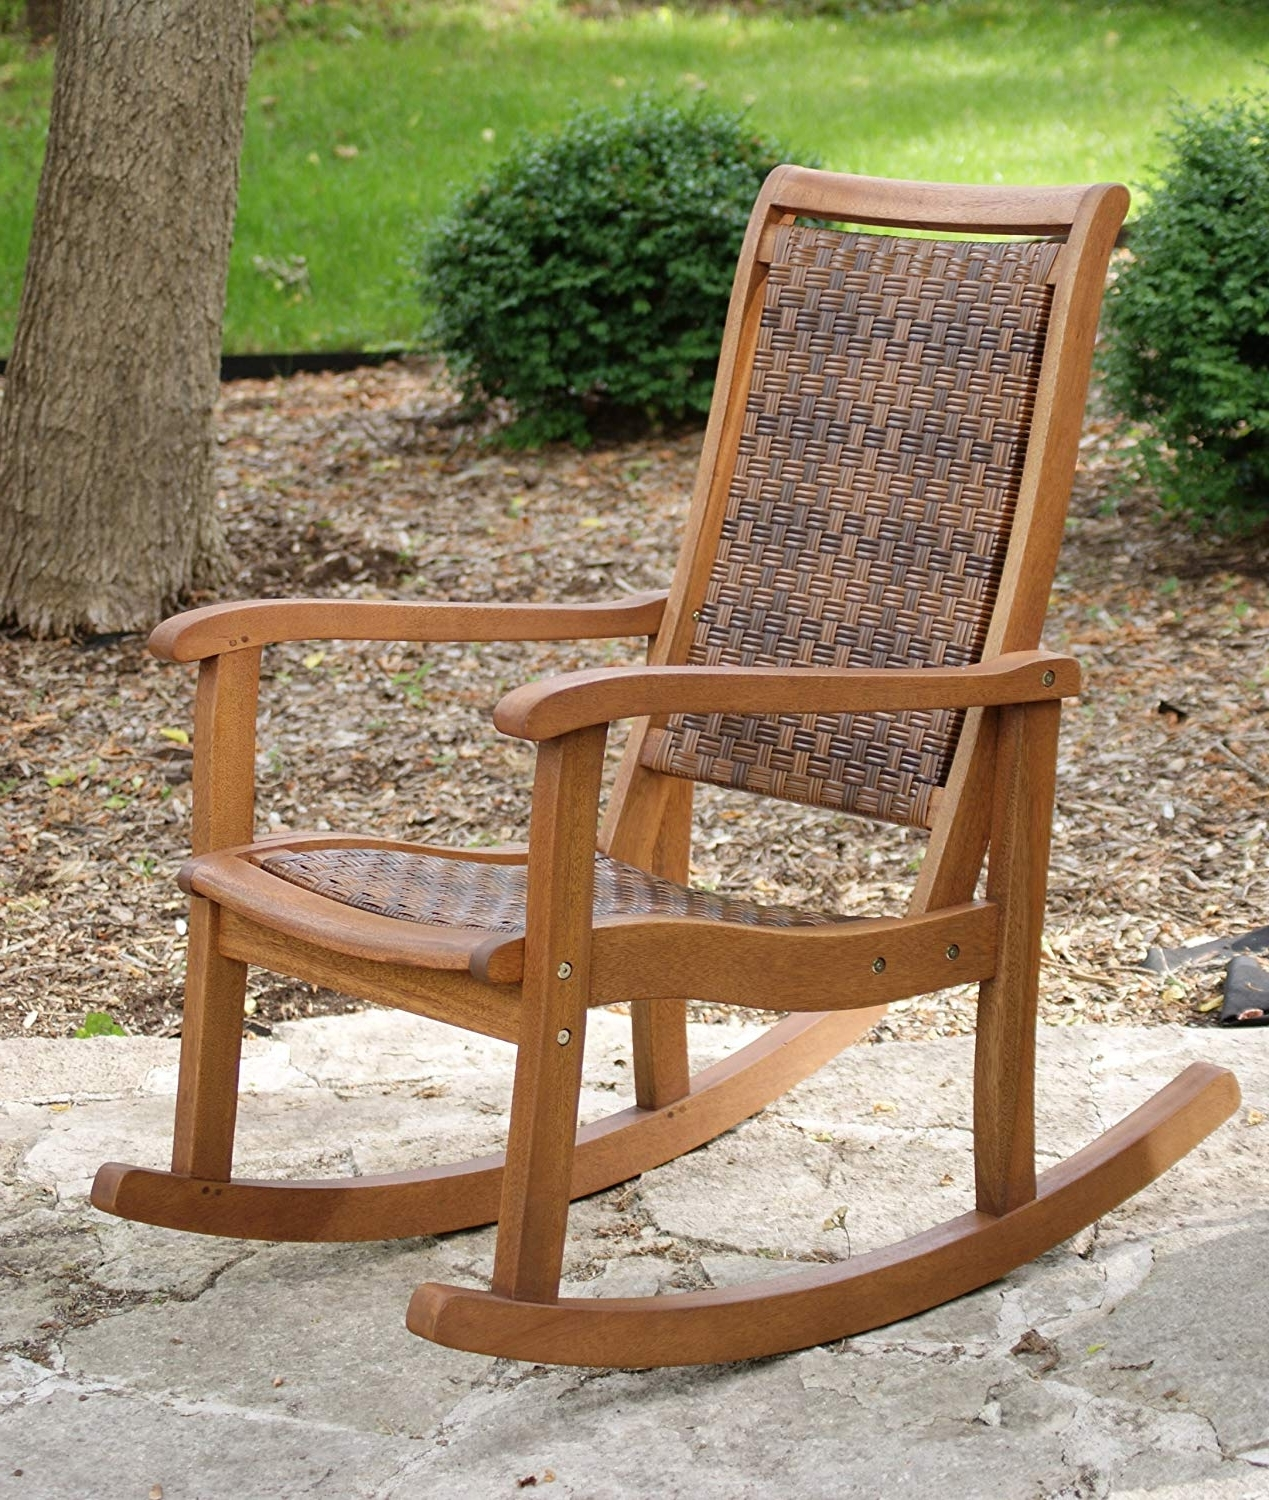 Amazon : Outdoor Interiors 21095Rc All Weather Wicker Mocha And Pertaining To Latest Outdoor Wicker Rocking Chairs (View 15 of 15)